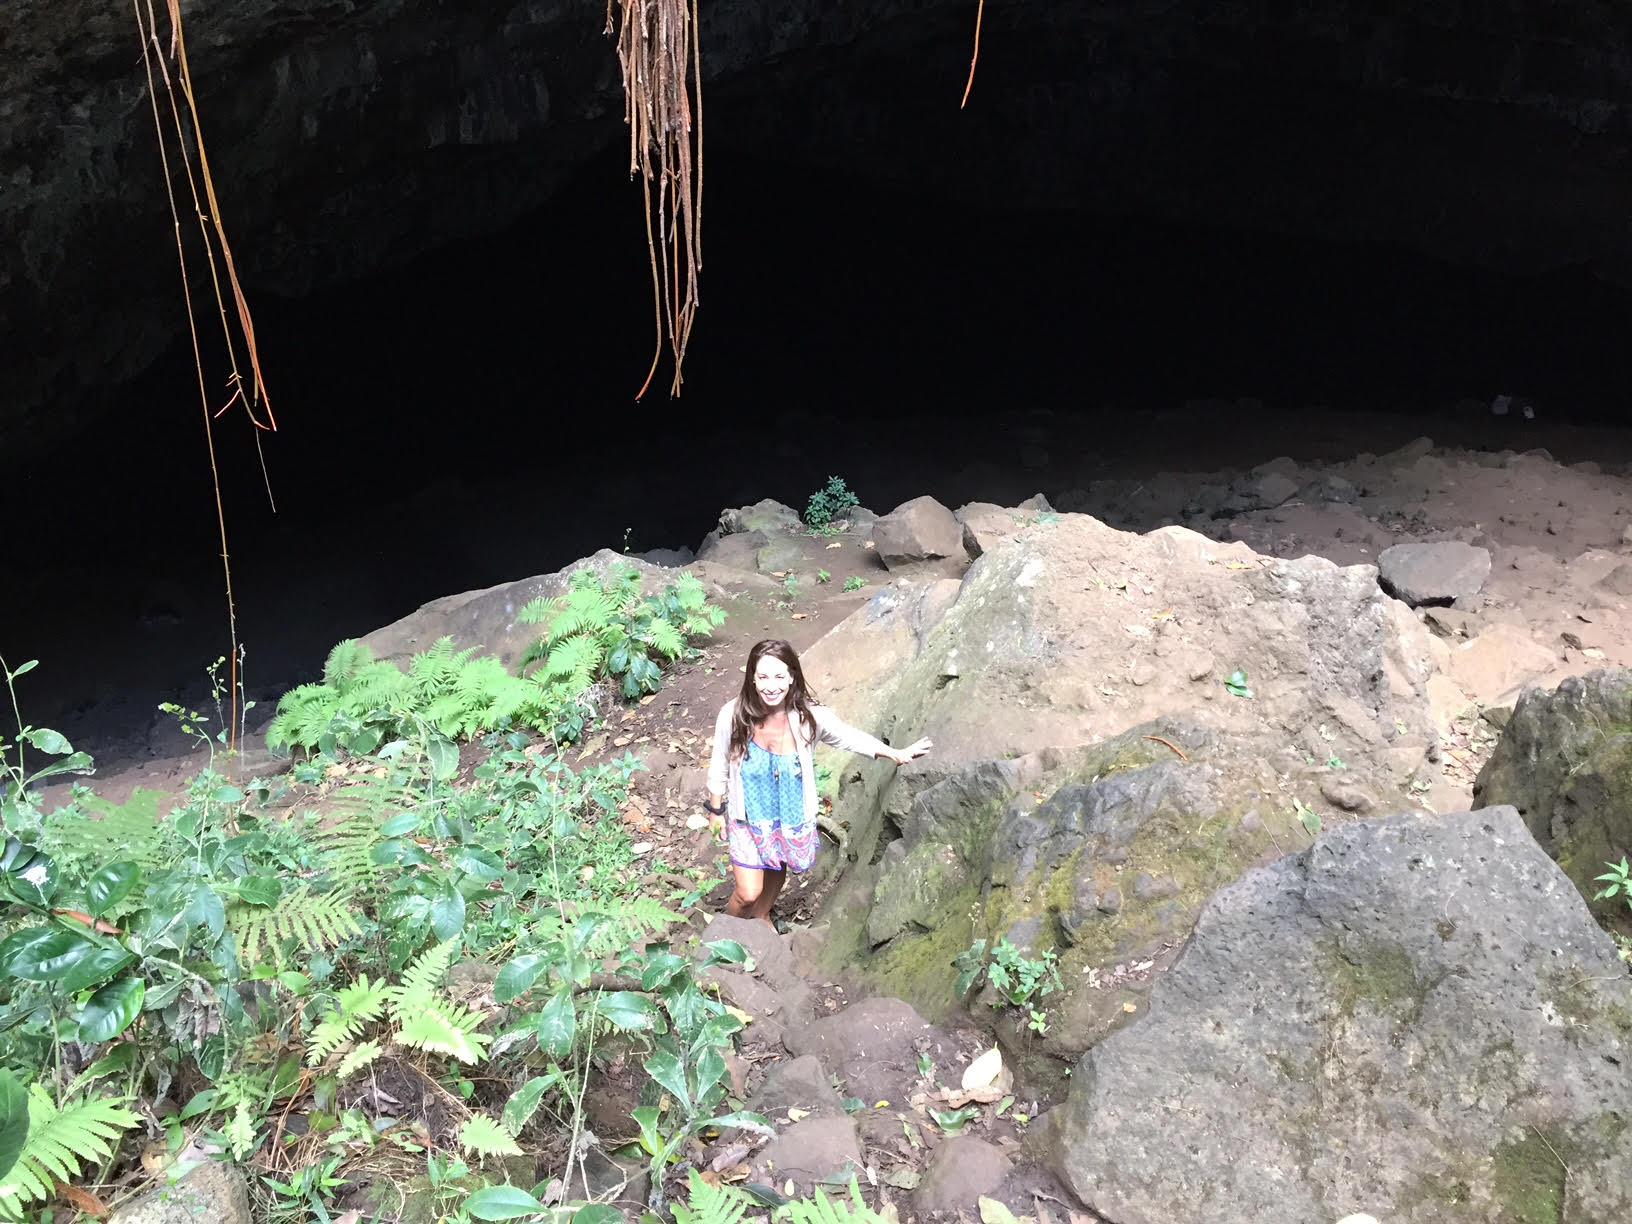 Waikapalae Cave, also known as the Blue Room, Kauai